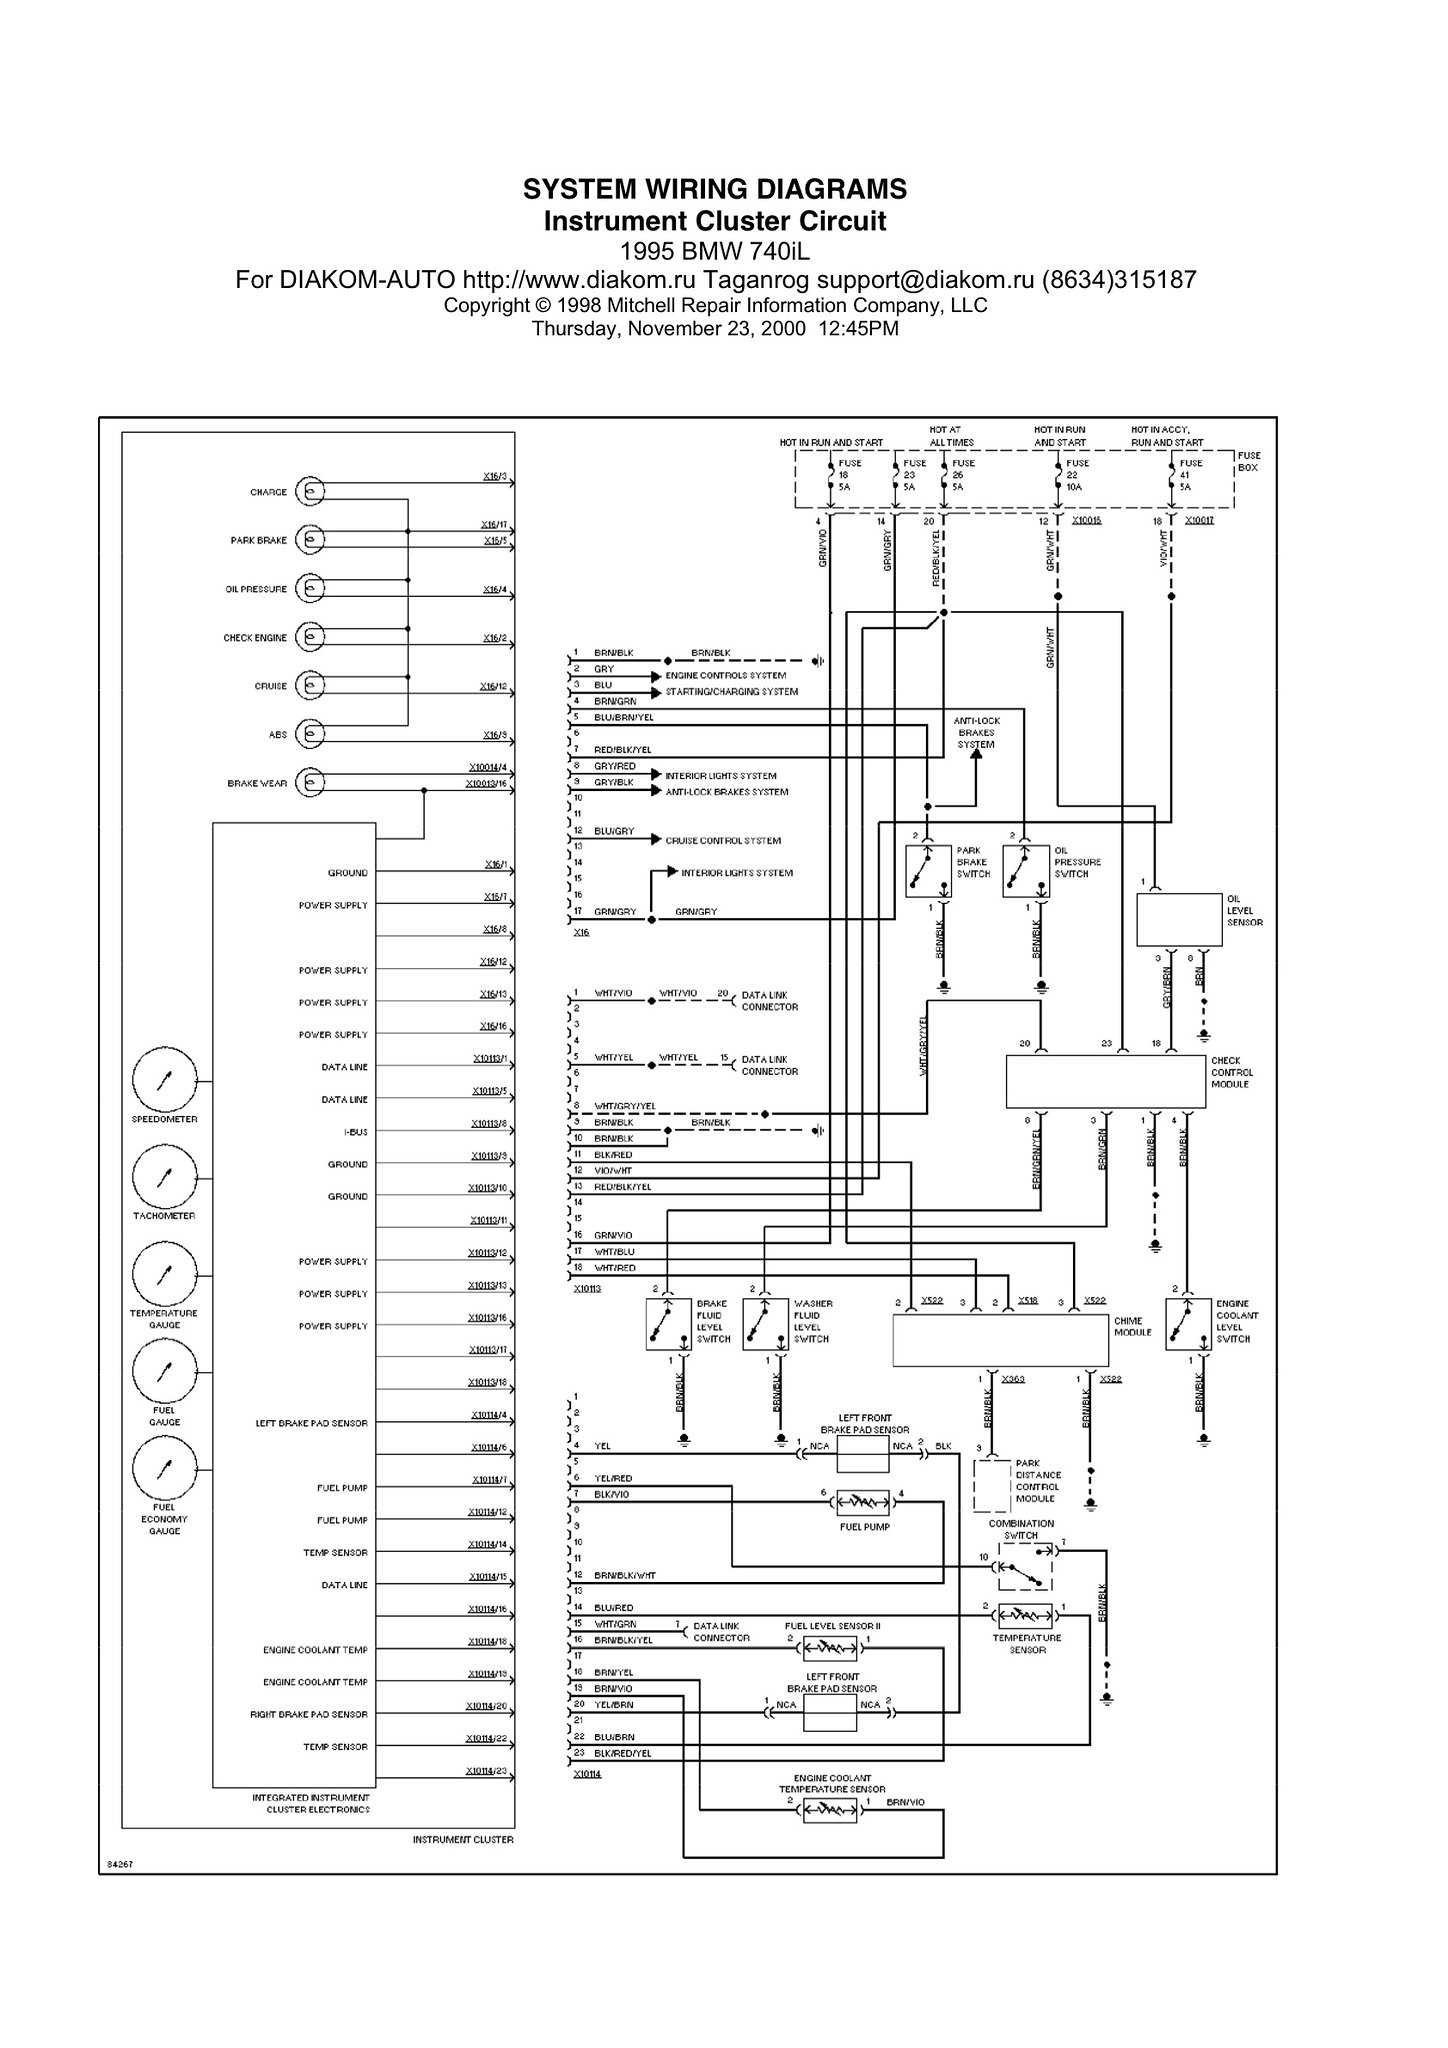 7703585142_dbc4ceb414_k bmw e39 wiring diagrams 1998 740i heated seat wiring diagram 2003 bmw e46 wiring diagram at gsmx.co